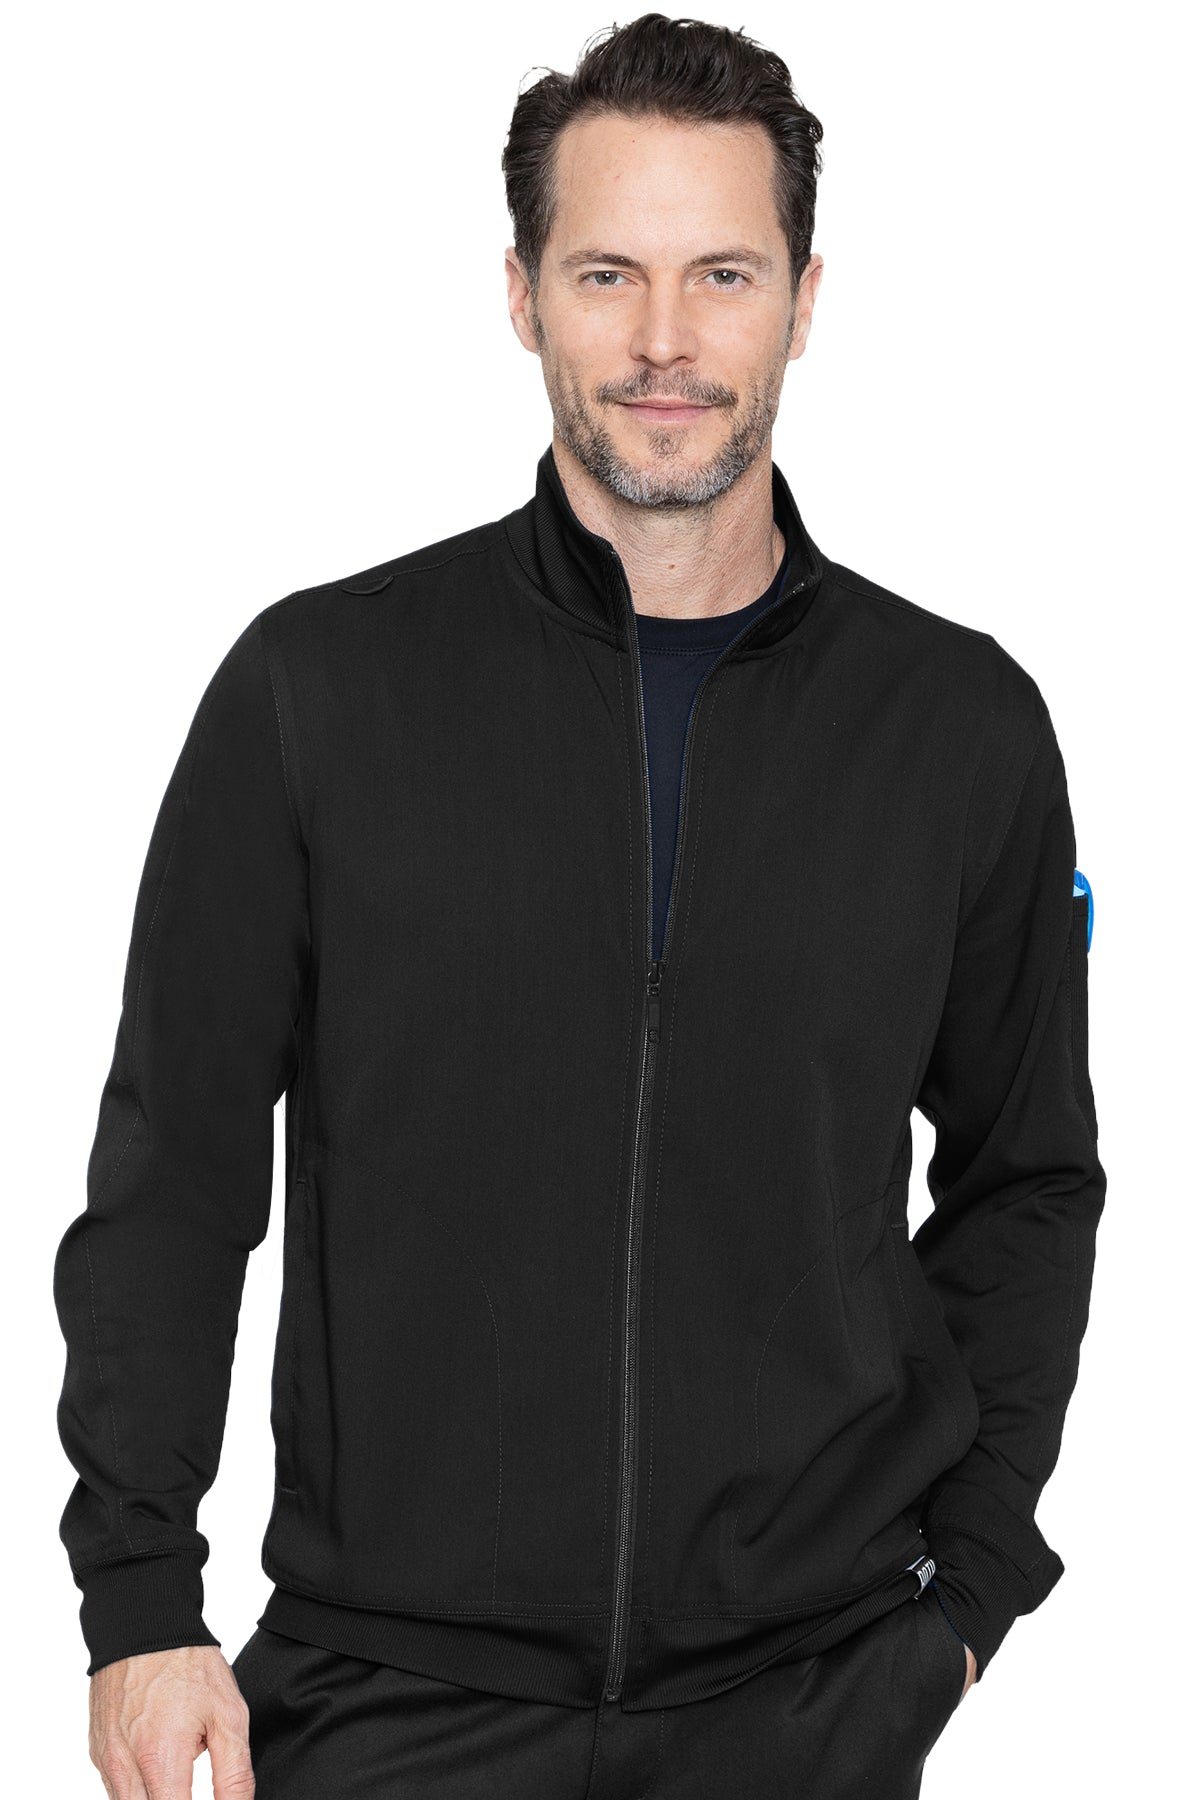 Med Couture Mens Scrub Jacket RothWear Orion Warmup in Black at Parker's Clothing and Shoes.